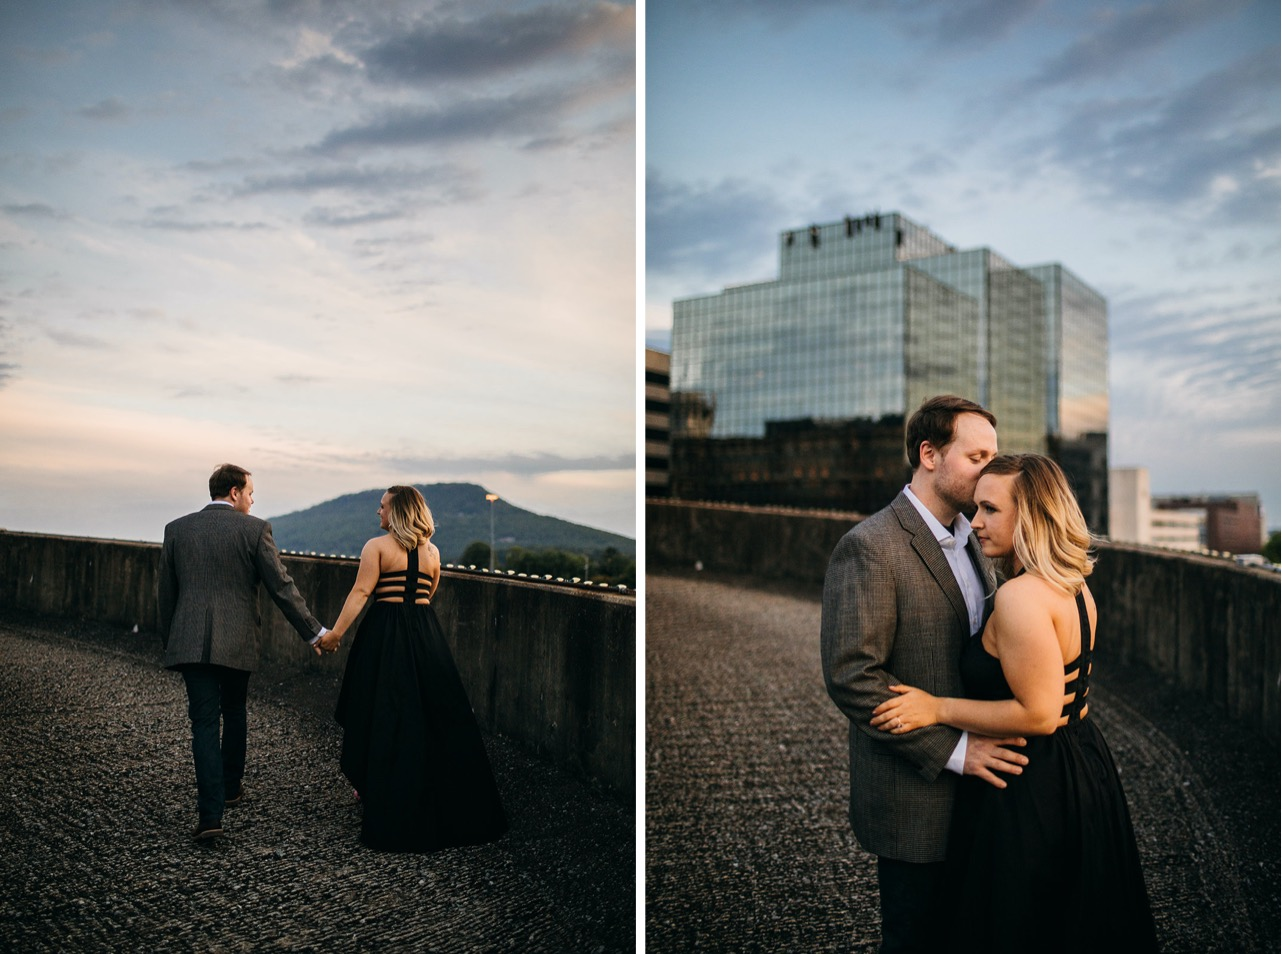 A man in a charcoal suit and his fiance in a black gown on a Chattanooga rooftop at sunset.